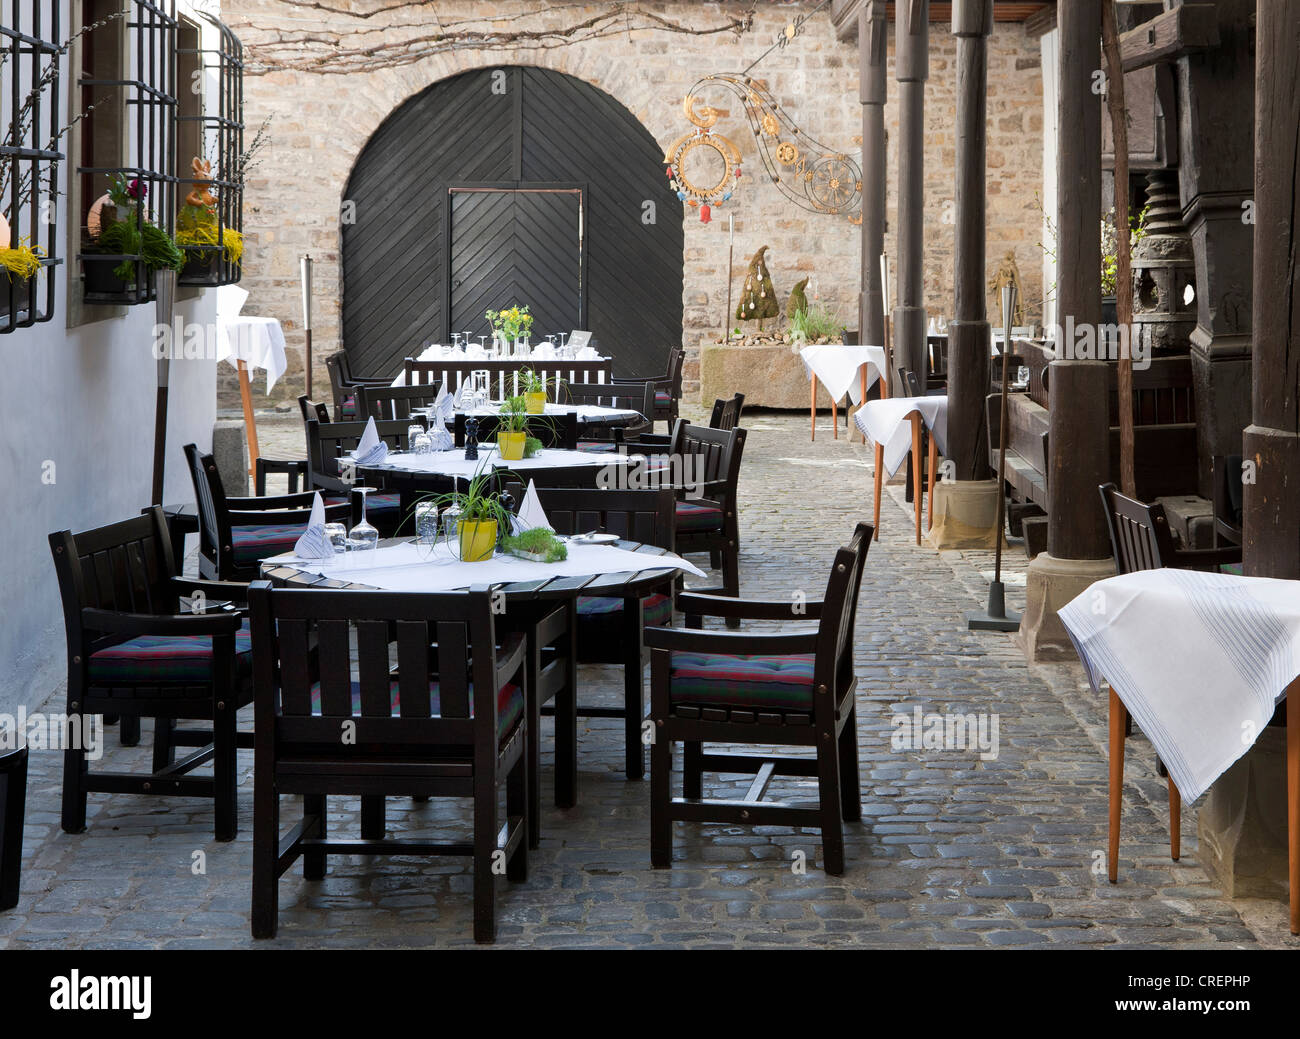 Weingut Zur Schwane winery, Volkach, Landkreis Kitzingen county, Lower Franconia, Bavaria, southern Germany, Germany, - Stock Image